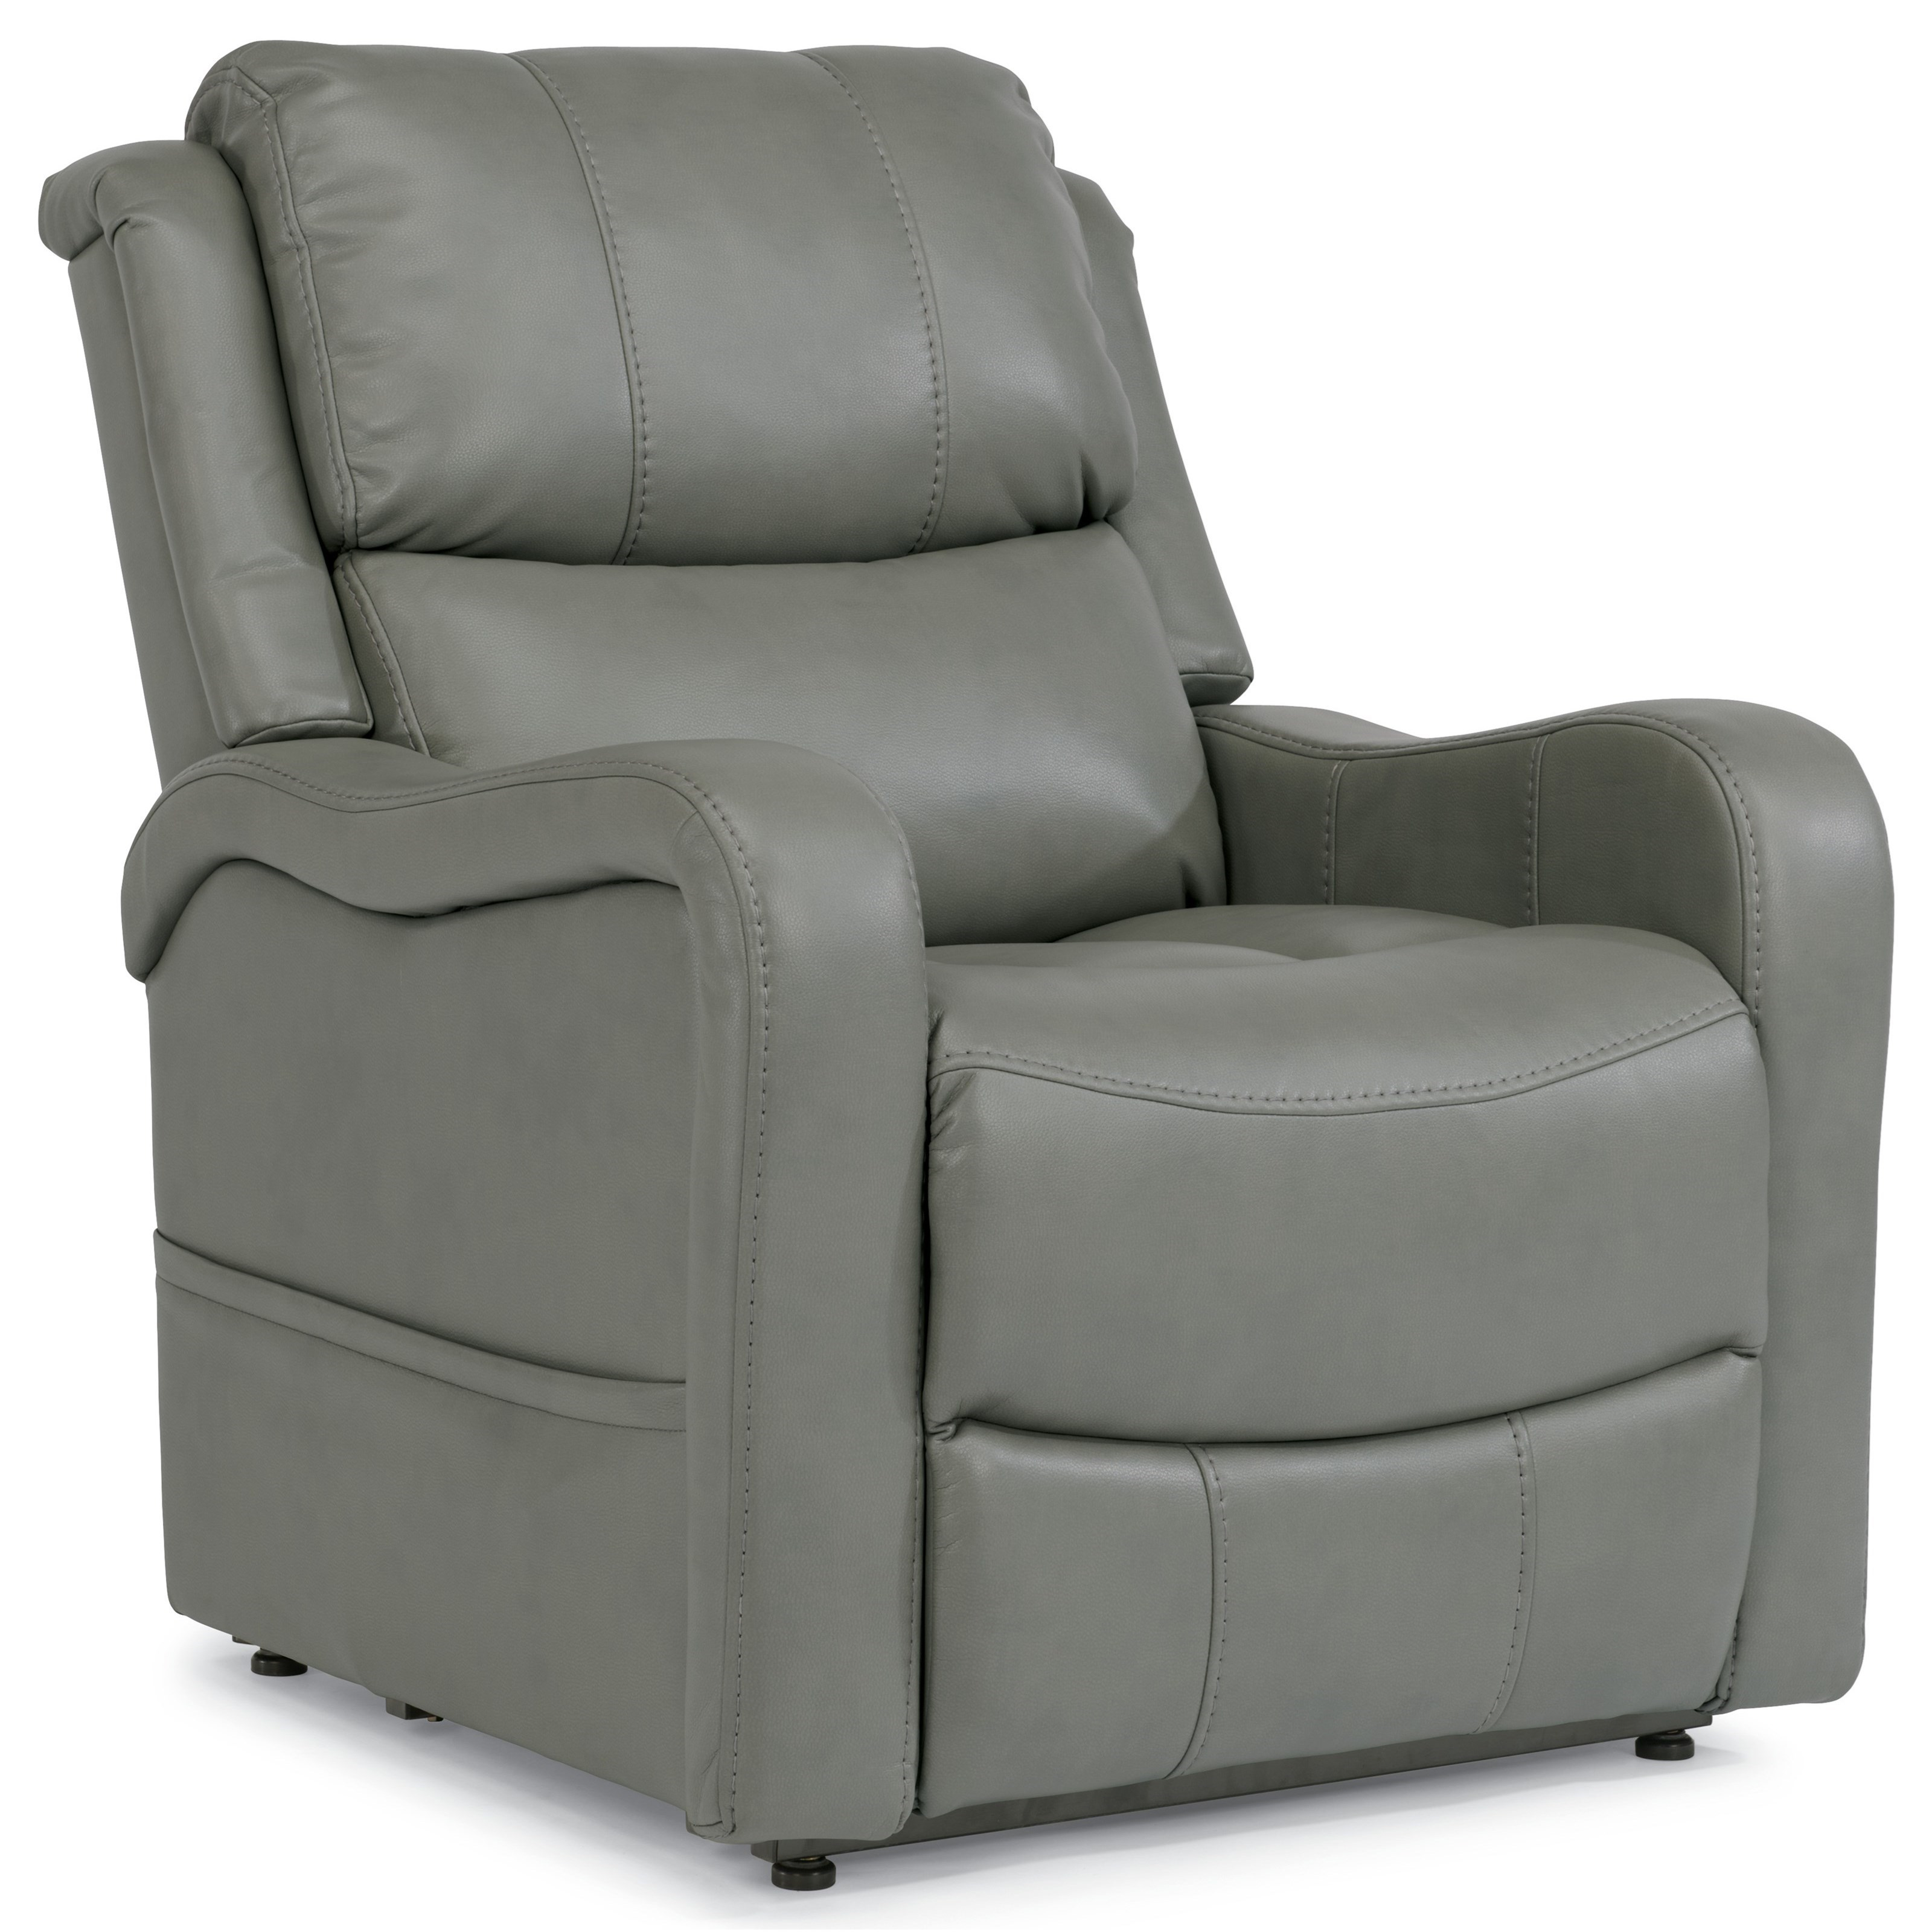 Flexsteel Latitudes Lift Chairs Lift Recliner w/ Right-Hand Cntrl - Item Number: 1908-55